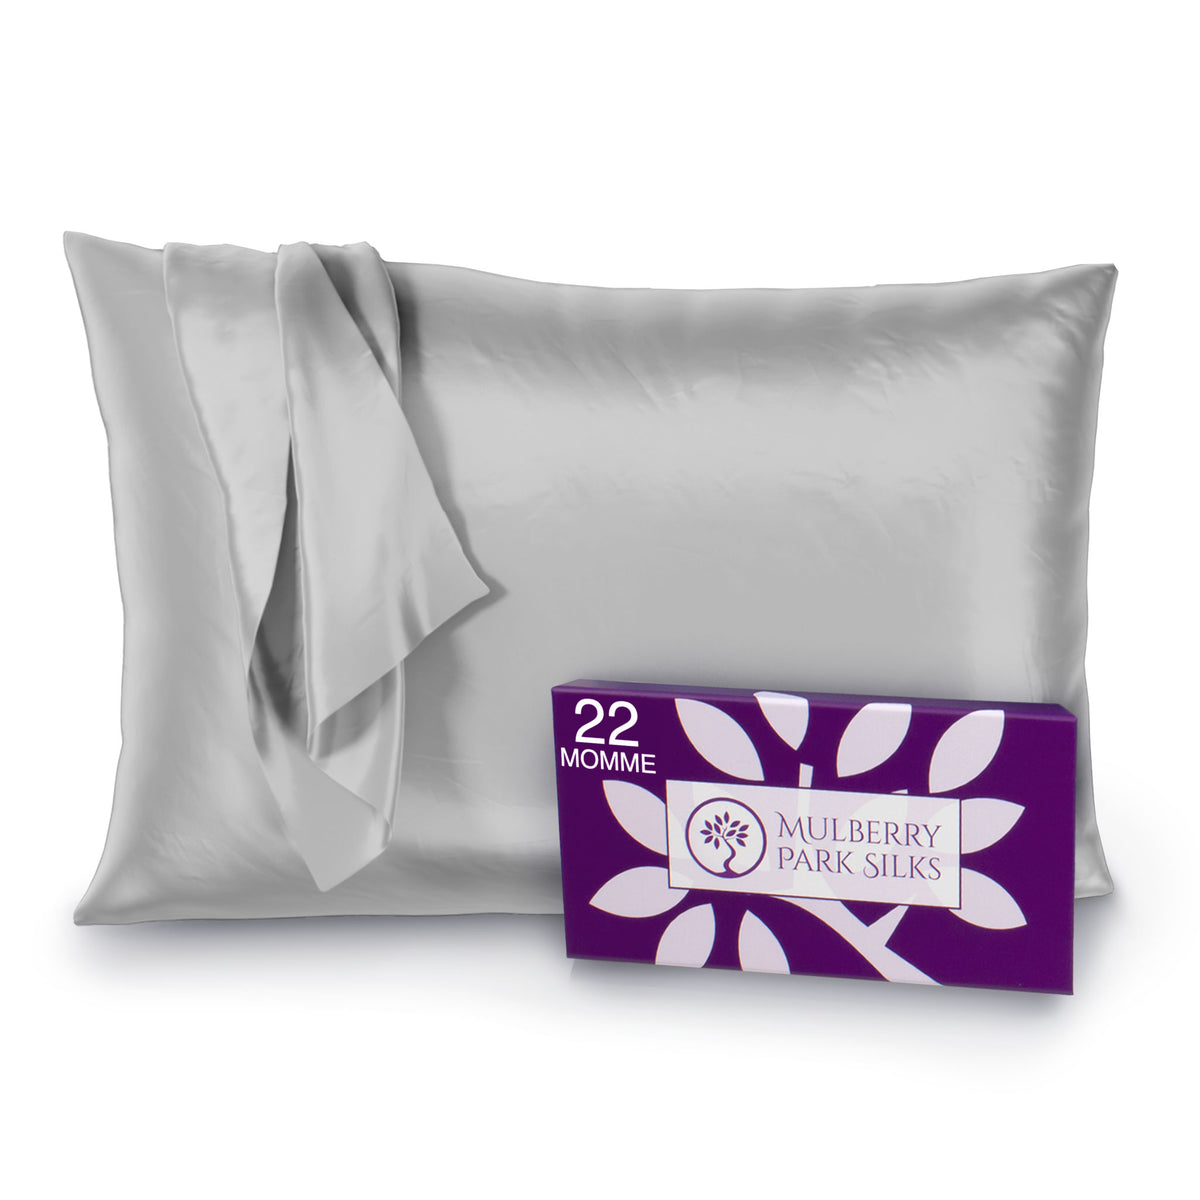 22 Momme Silk Pillowcases